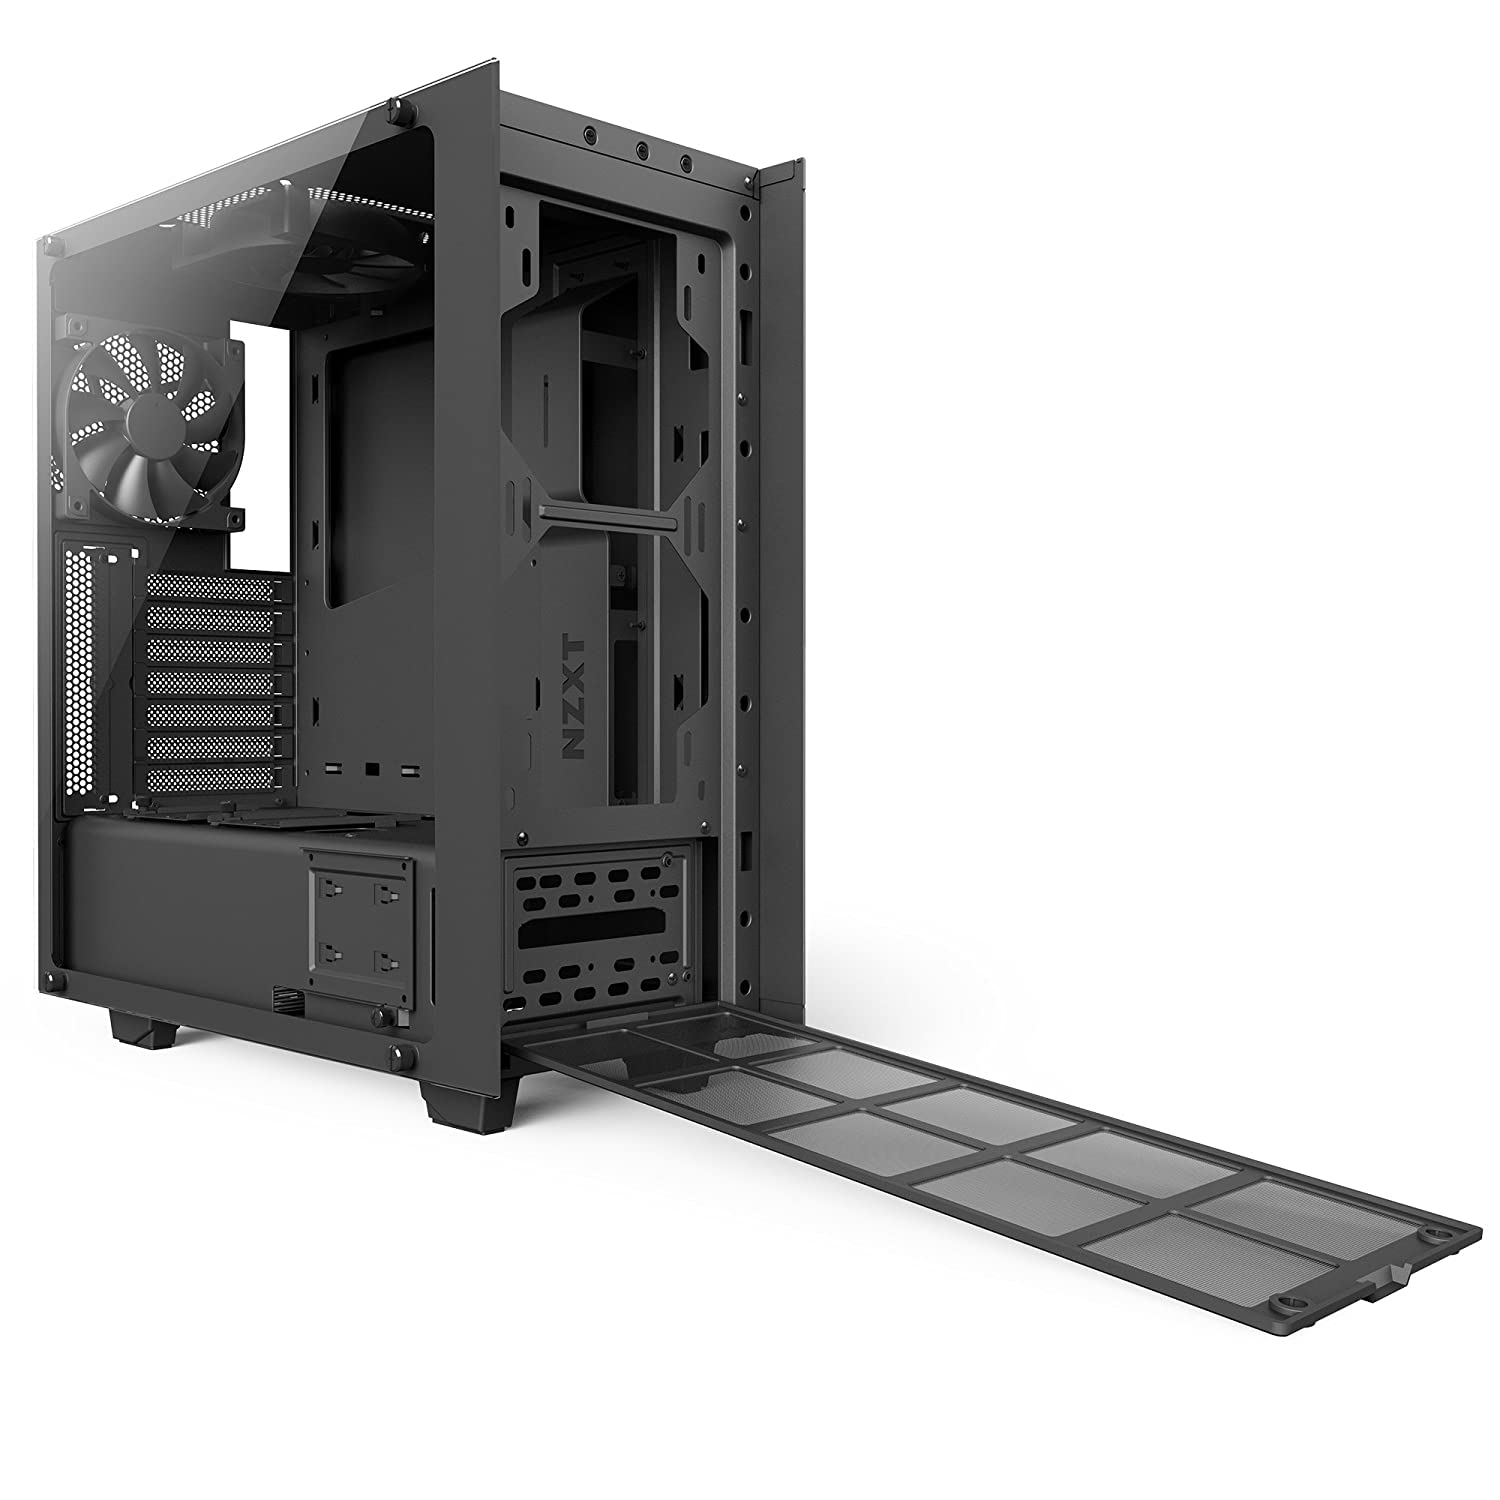 NZXT CA-S340W-B3 High Performance Gaming Case with VR Support - Black:  Amazon.co.uk: Computers & Accessories